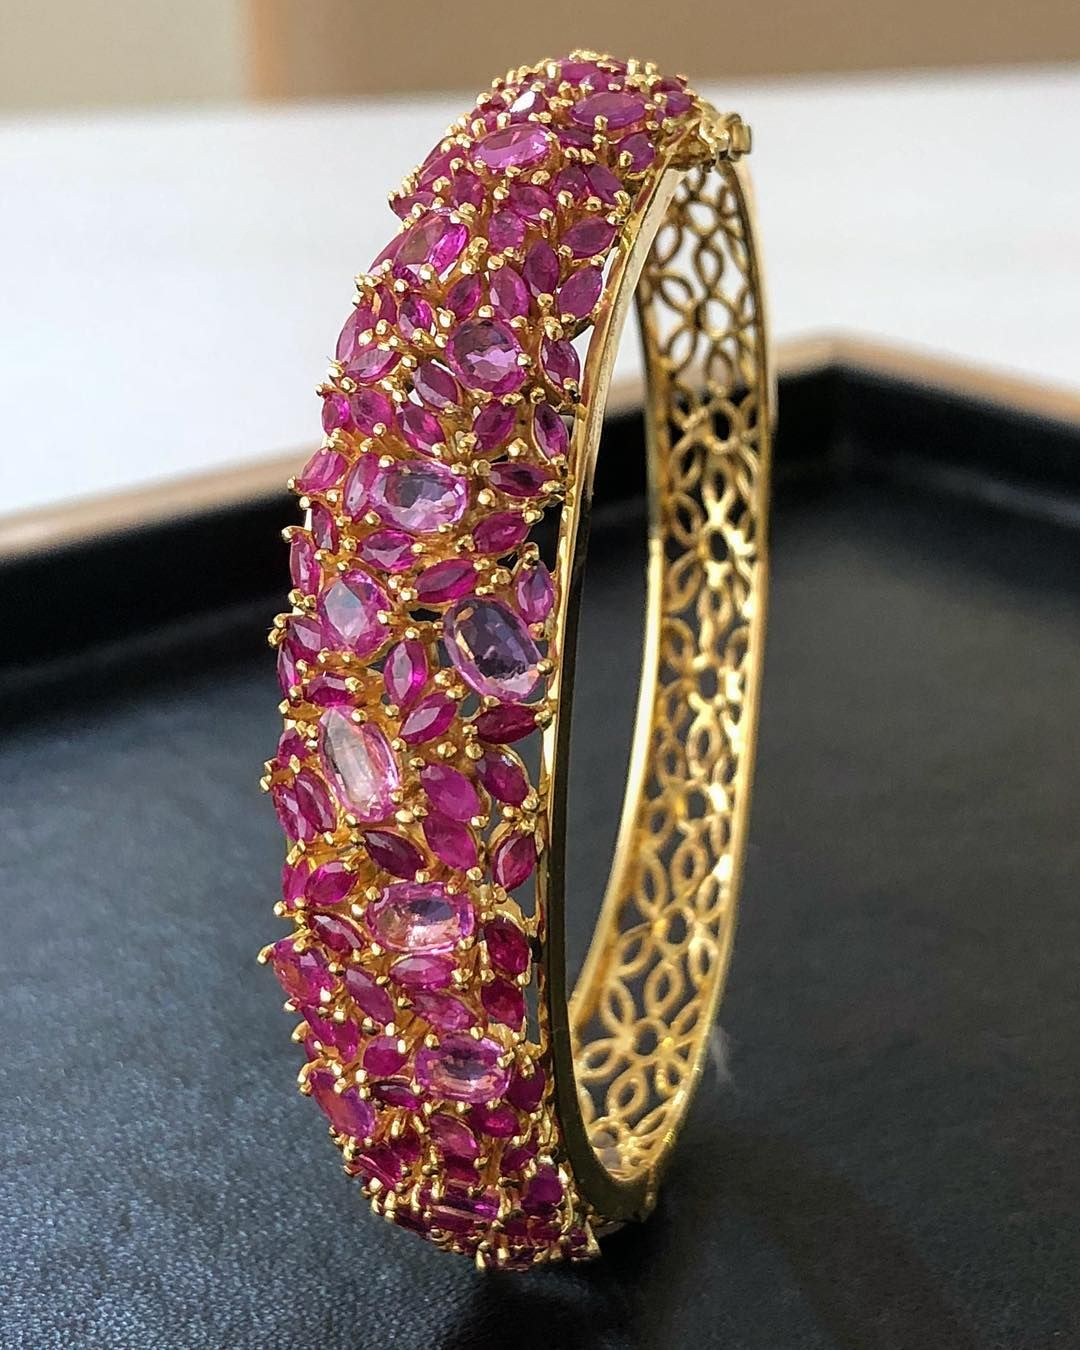 A montage in Rubies . Beautiful bangle studded with montage and rubies.  sultanjewels chennai 20 July 2018 ffba0a8d9612